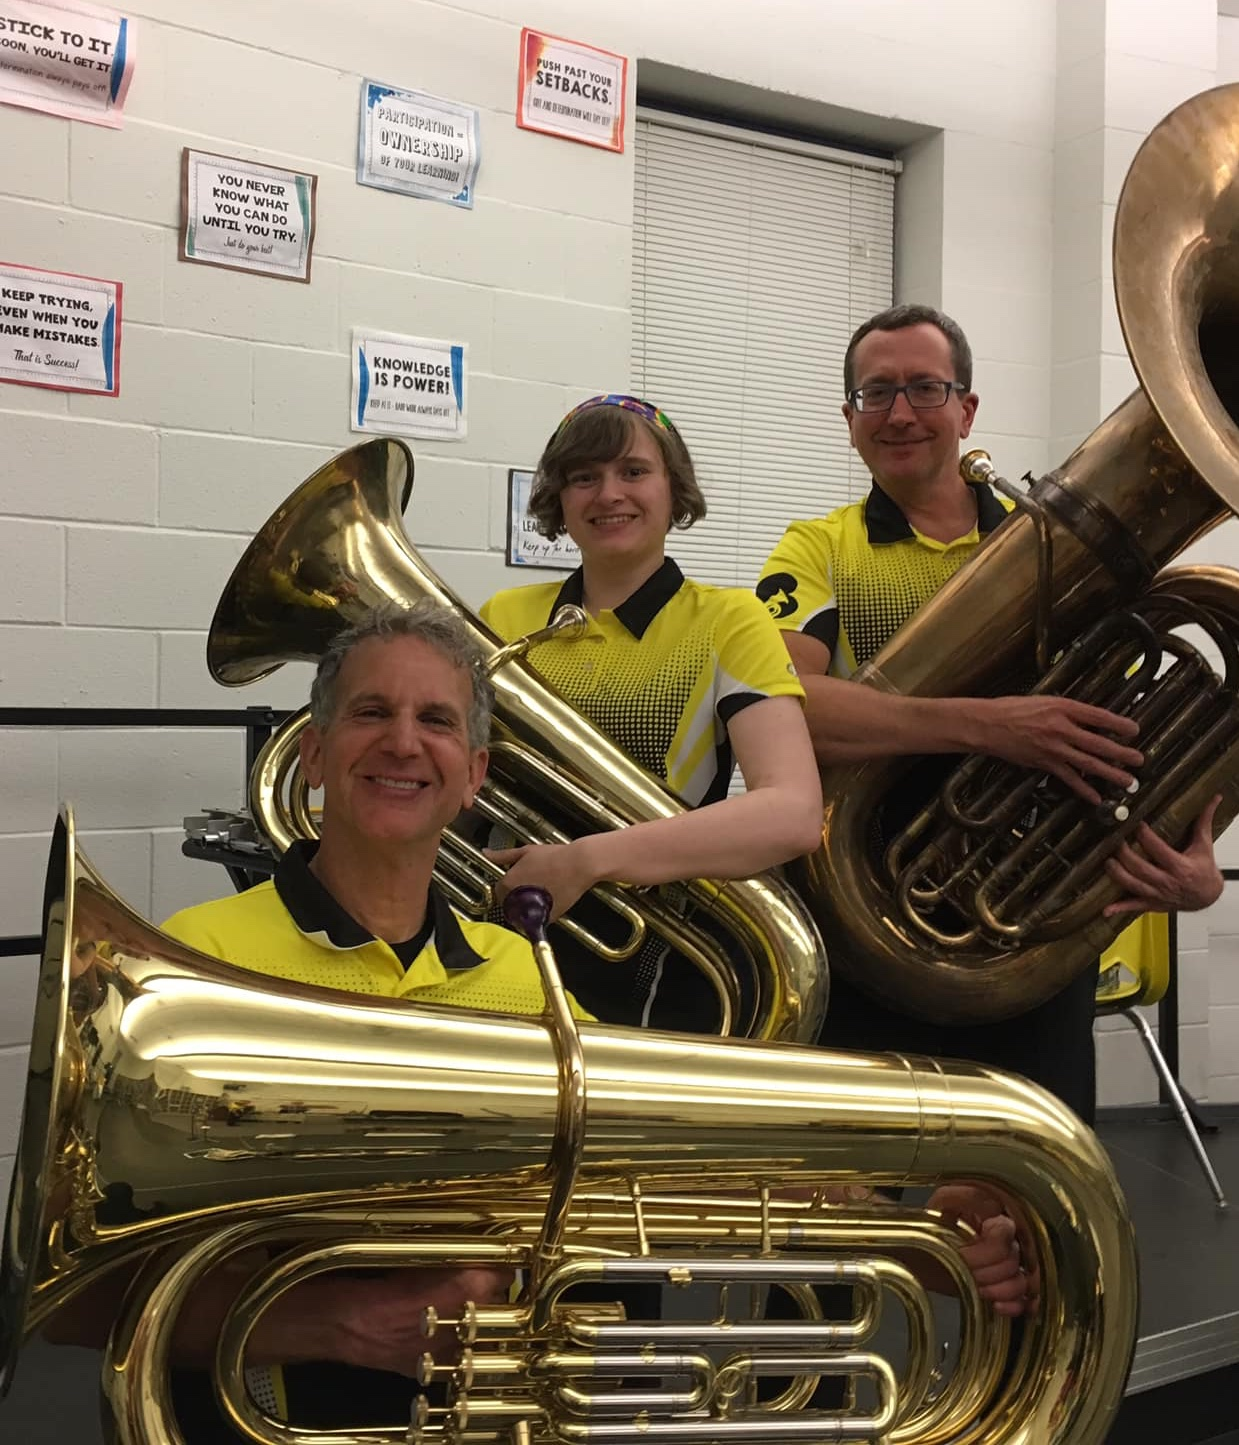 low brass image